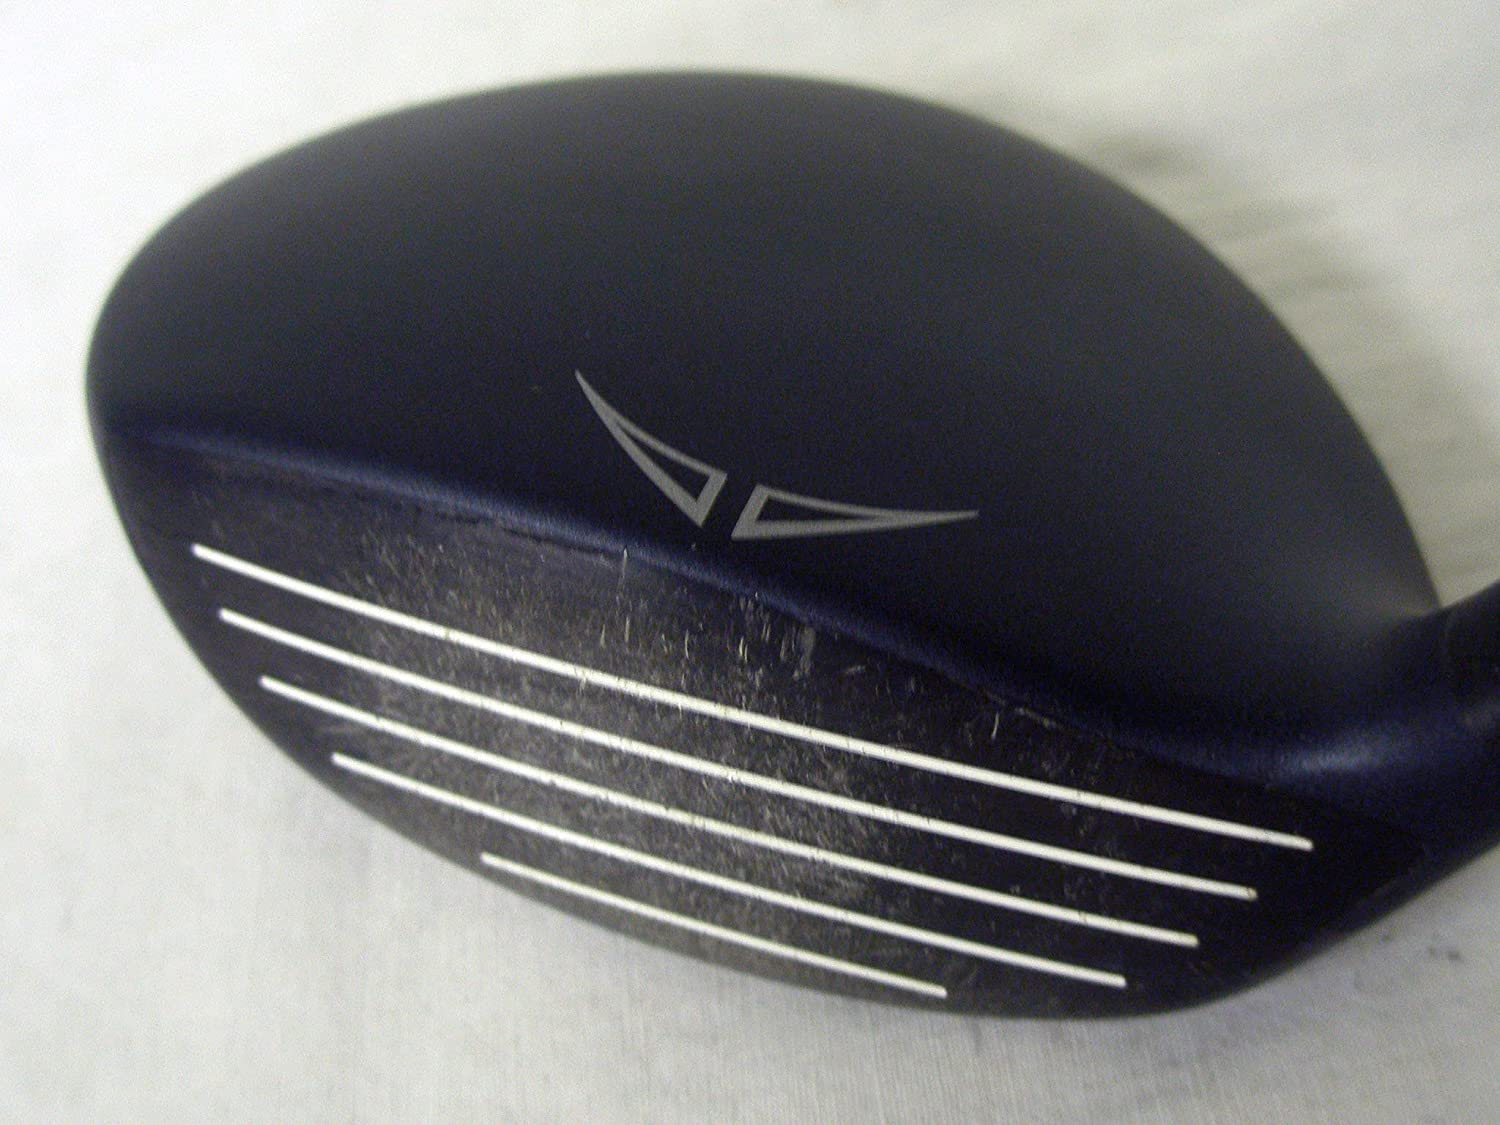 Amazon.com: Used Ping G25 Fairway Wood 5 Wood 5w 18 ...